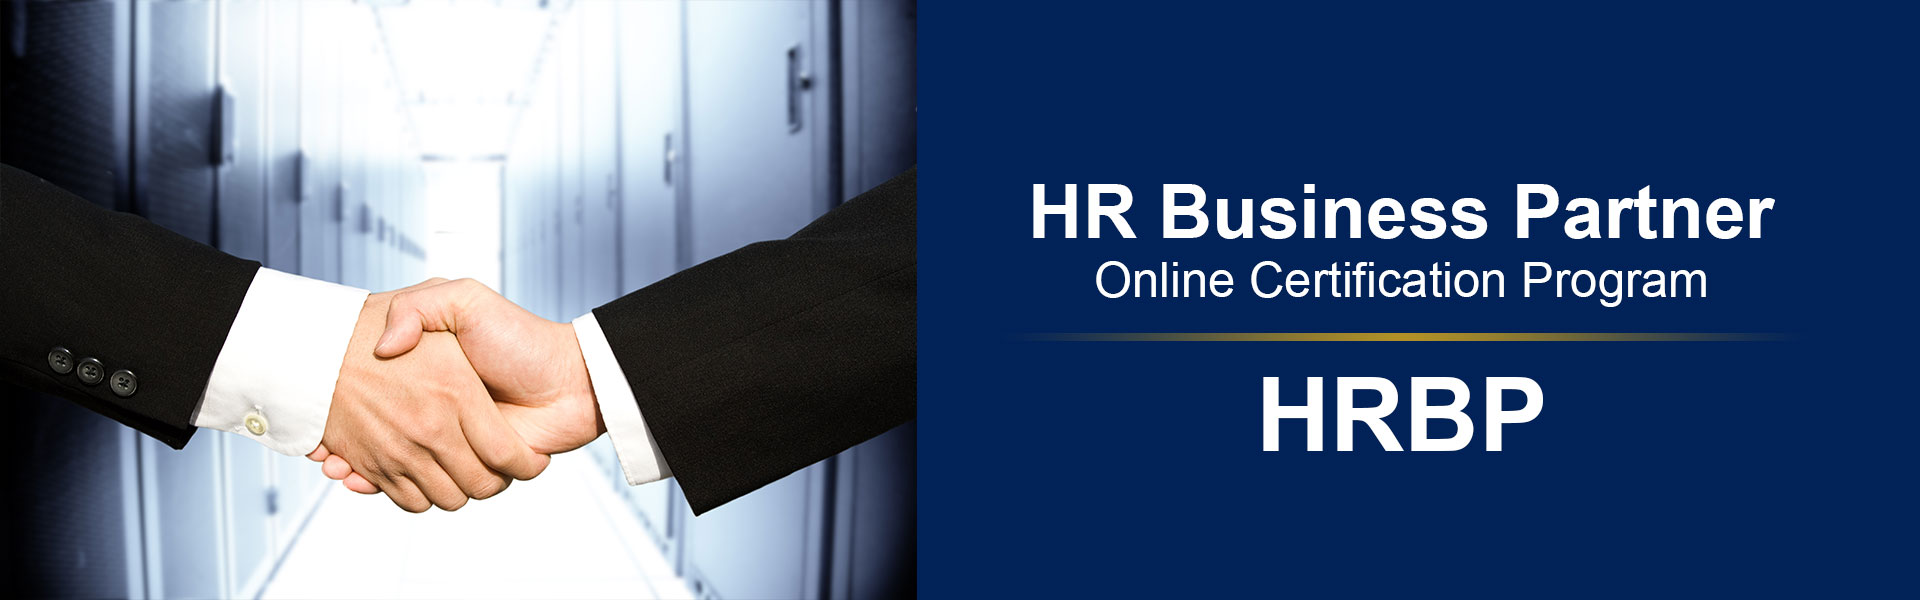 Hr Business Partner Certification Program Hrbp